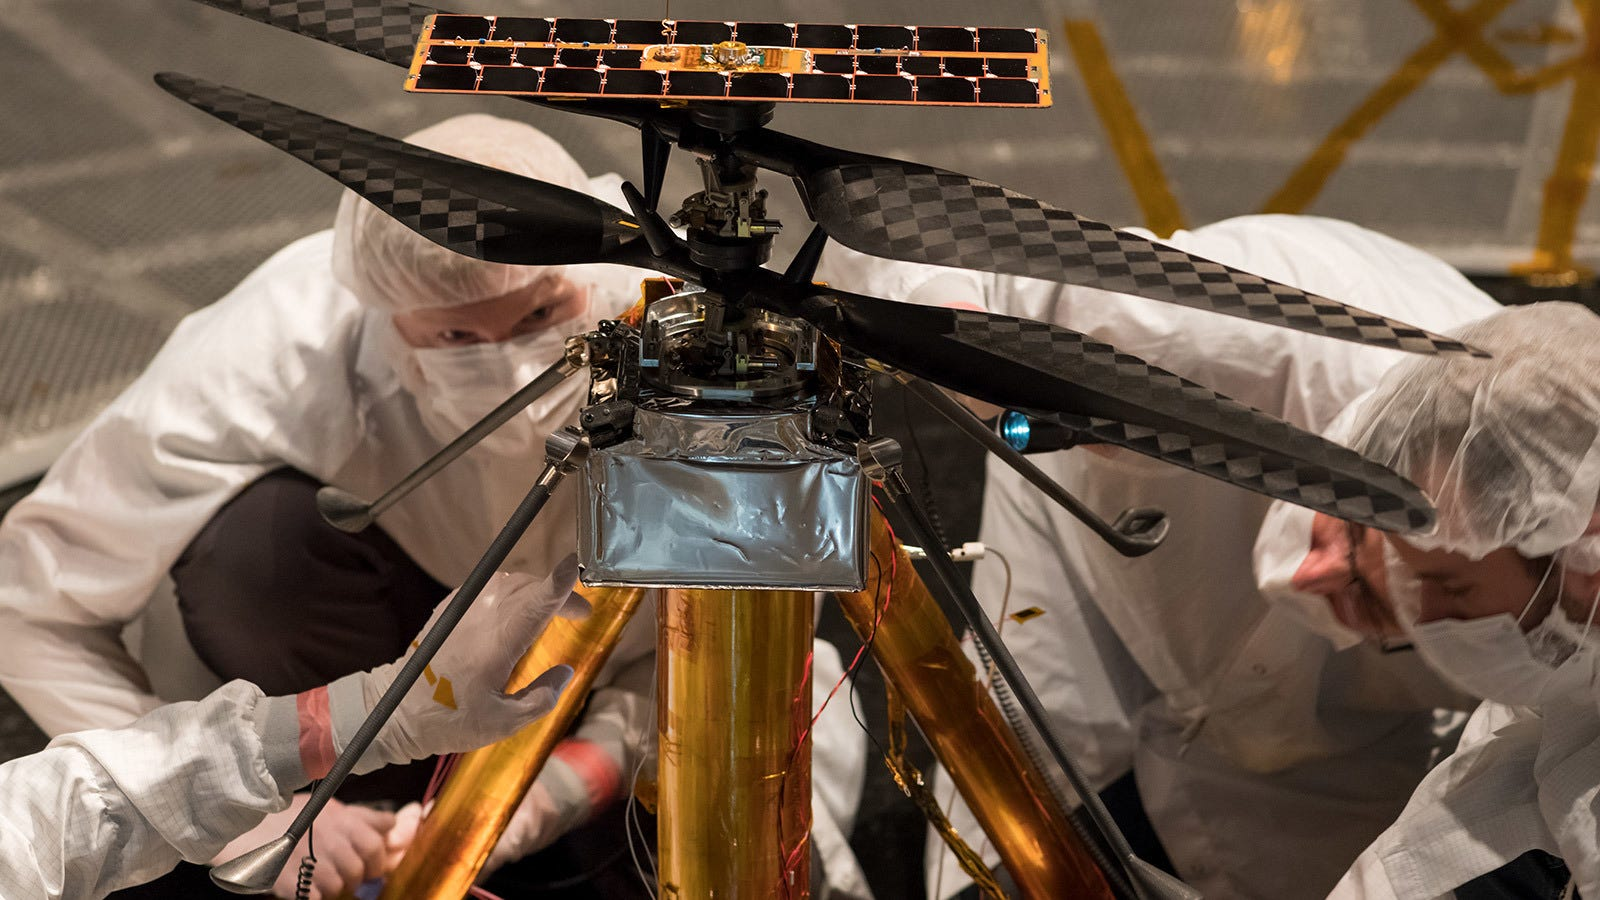 QnA VBage NASA's Mars-Bound Helicopter Passes Critical Flight Tests In Extreme Conditions